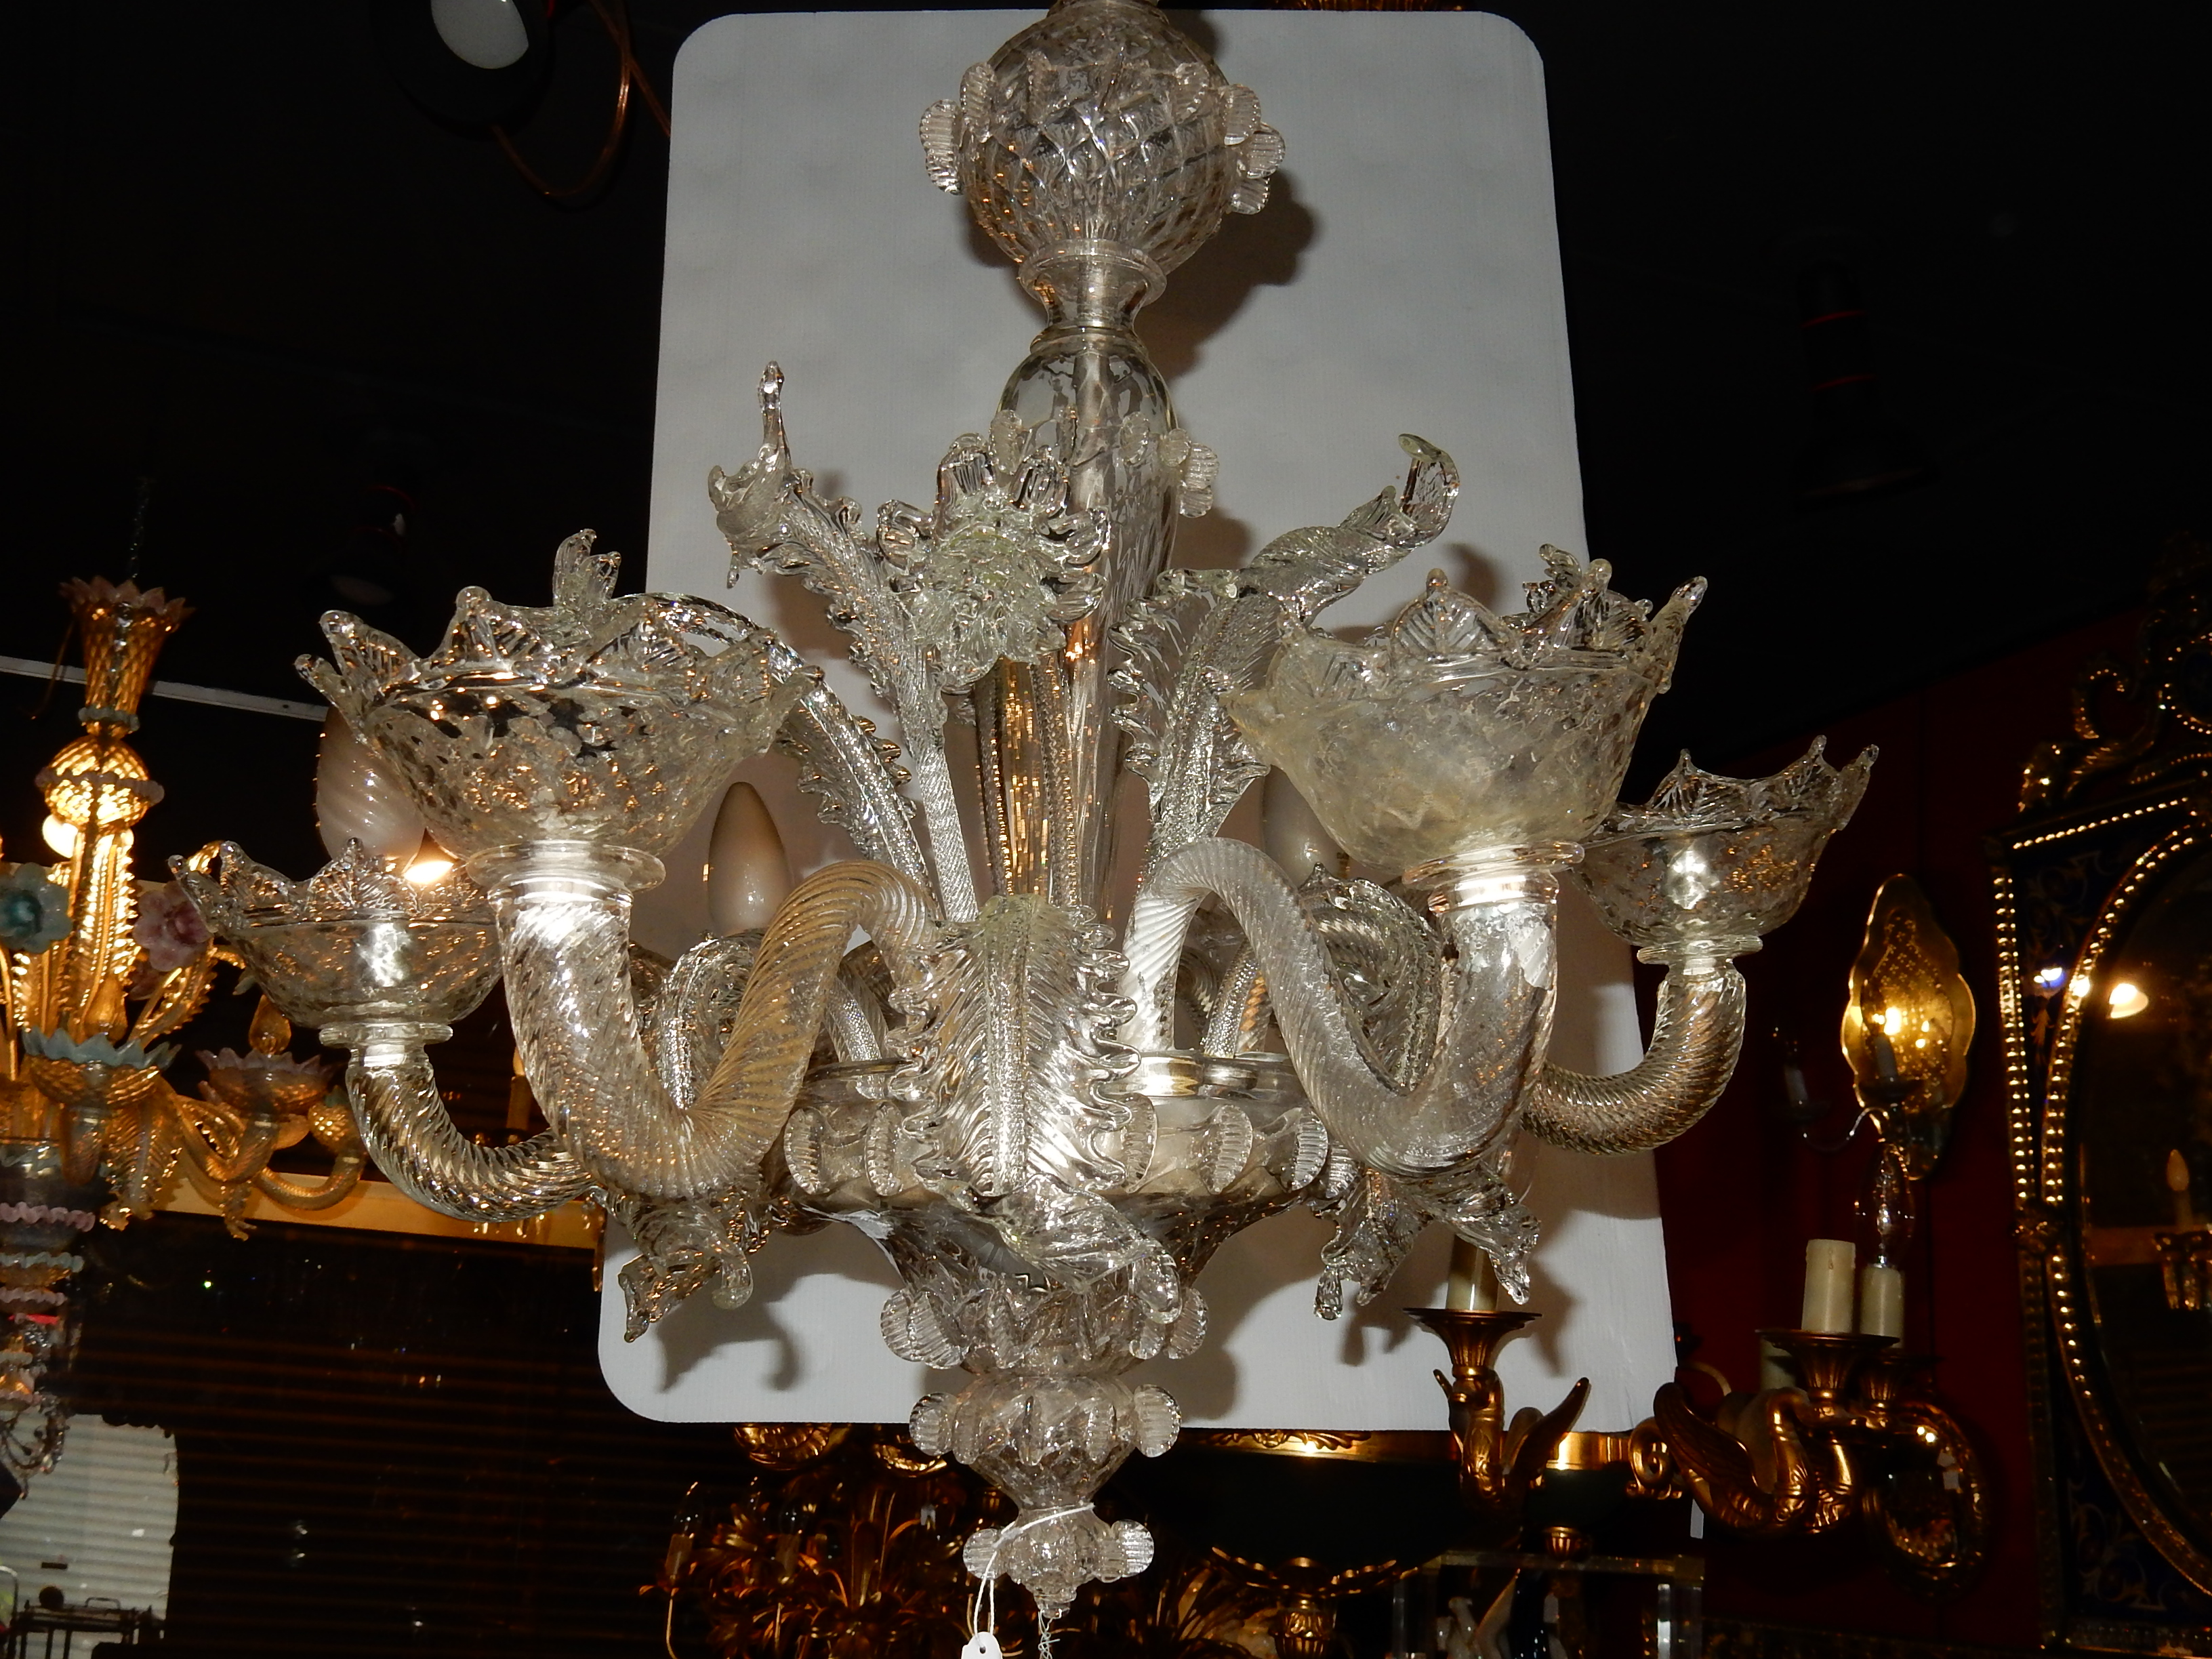 1900 1920 Crystal Chandelier Murano 6 Arms of Light